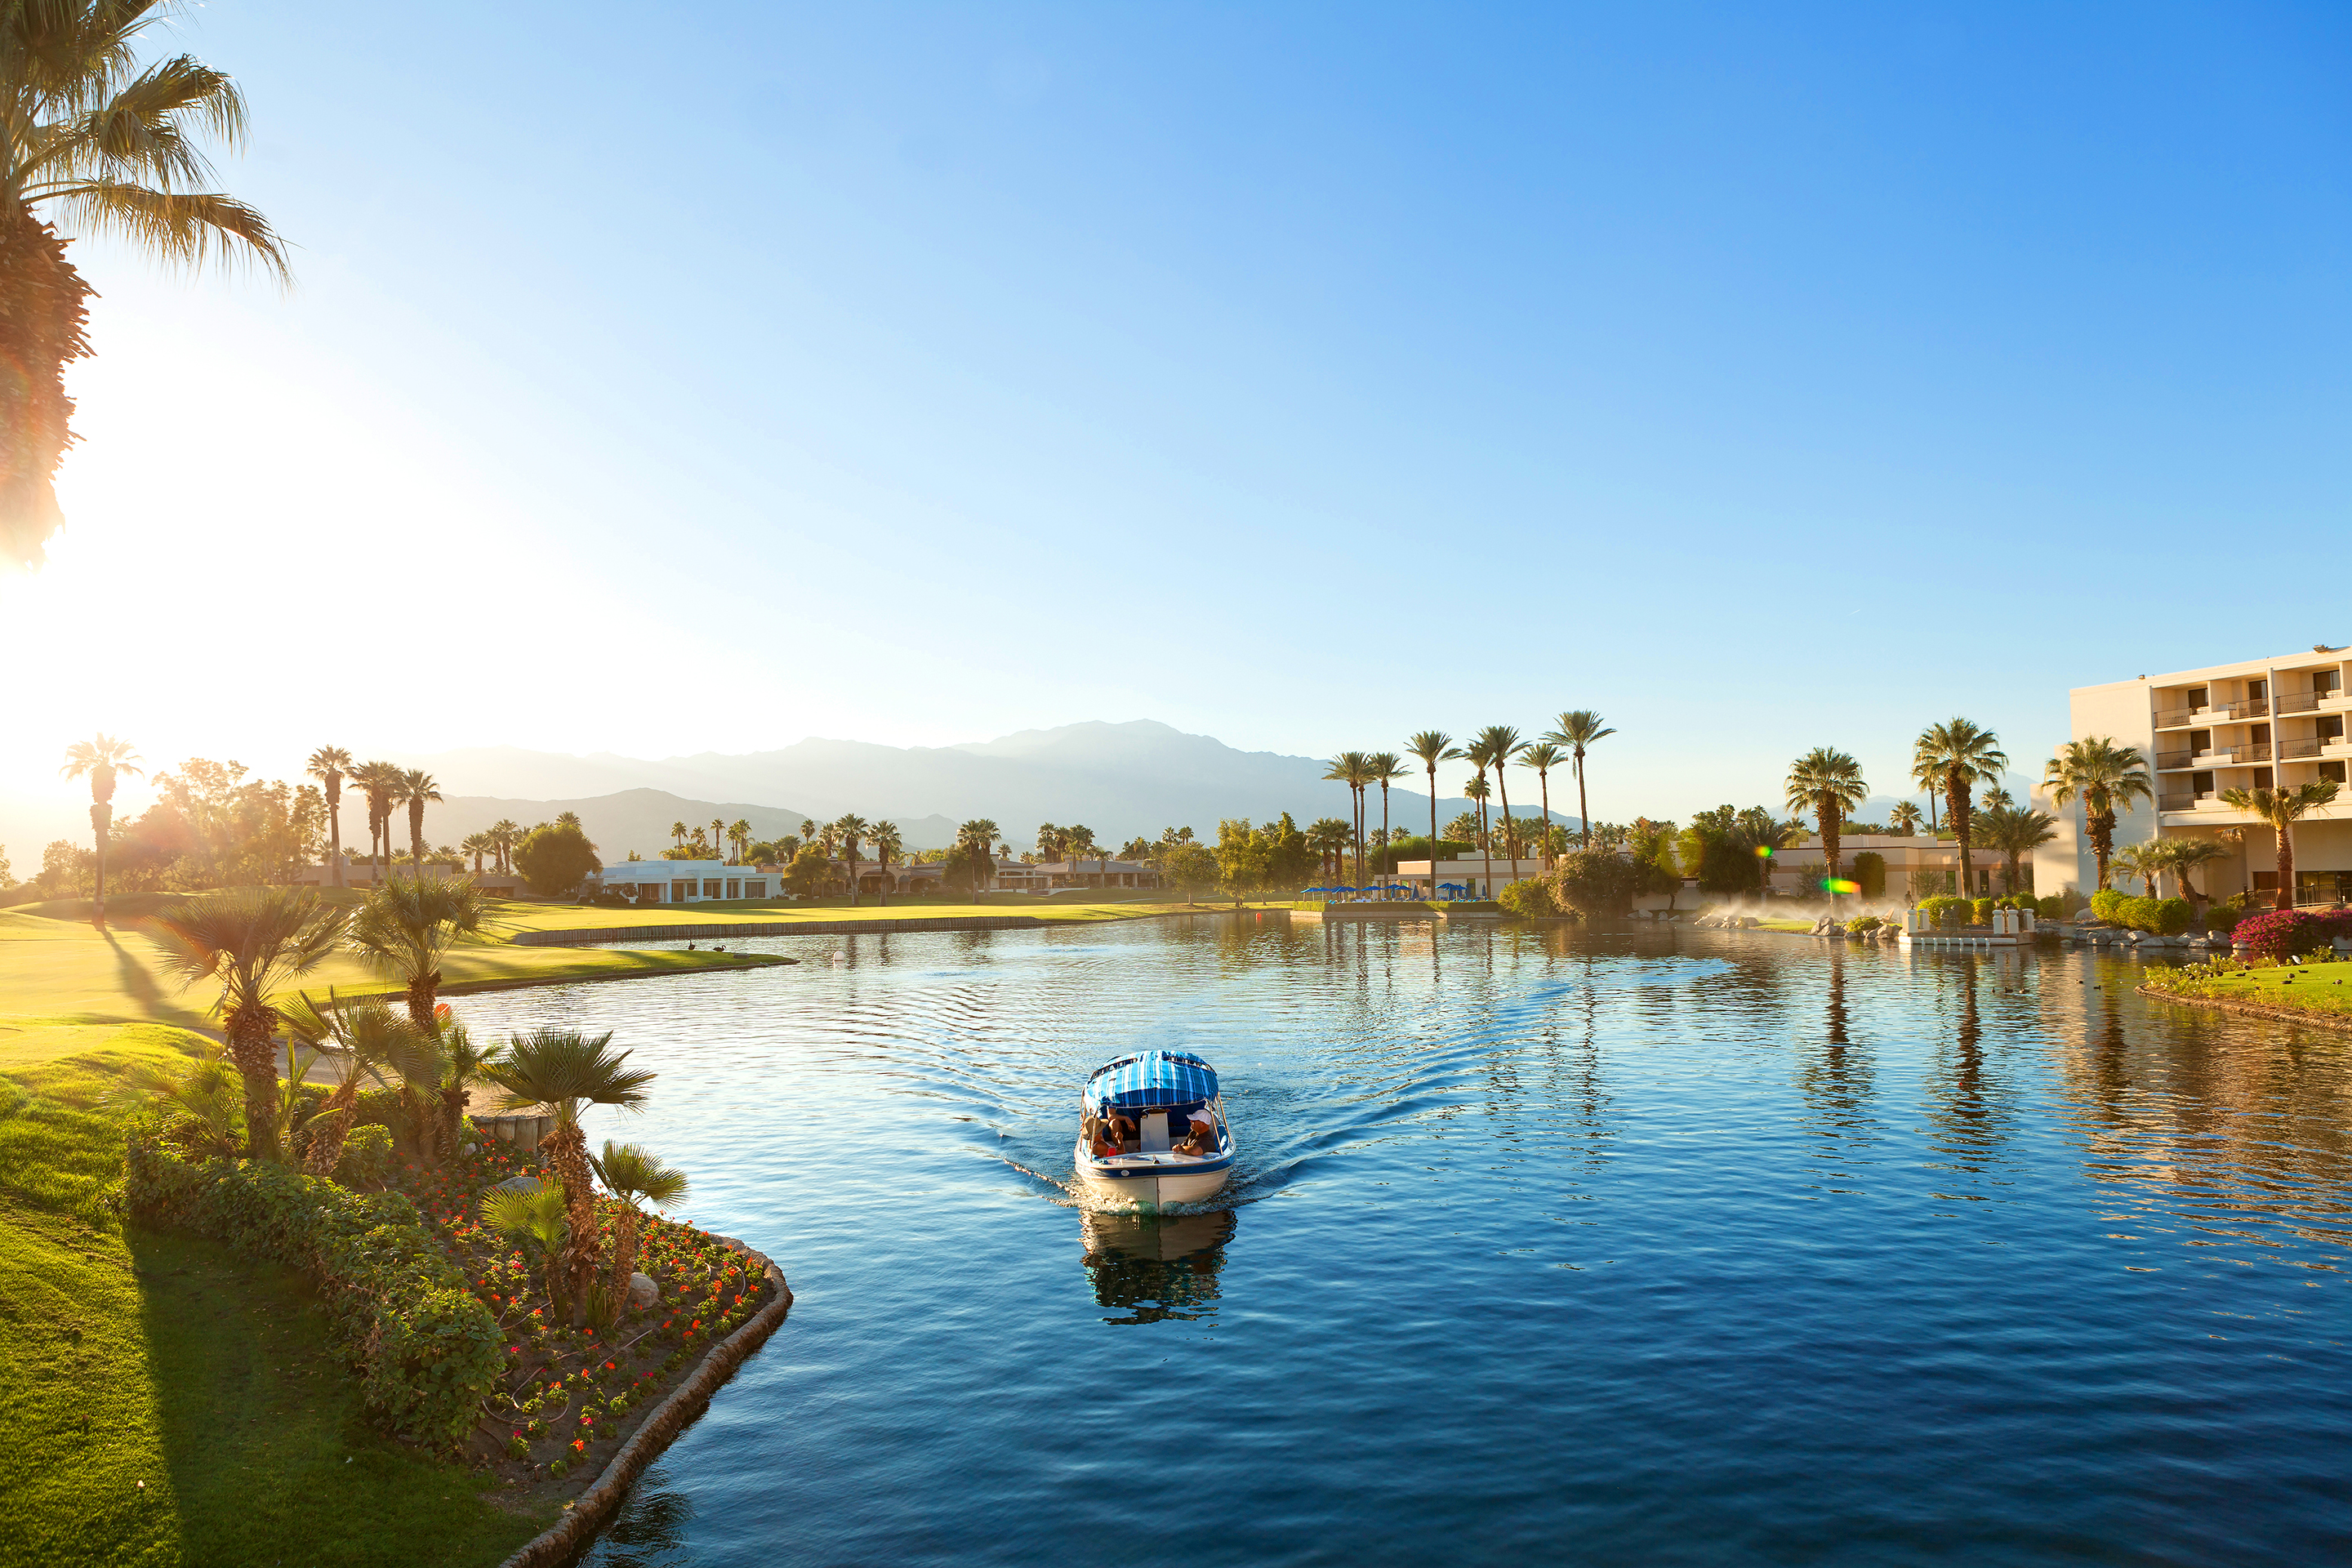 JW Marriott Desert Springs Resort and Spa in Palm Desert, California.